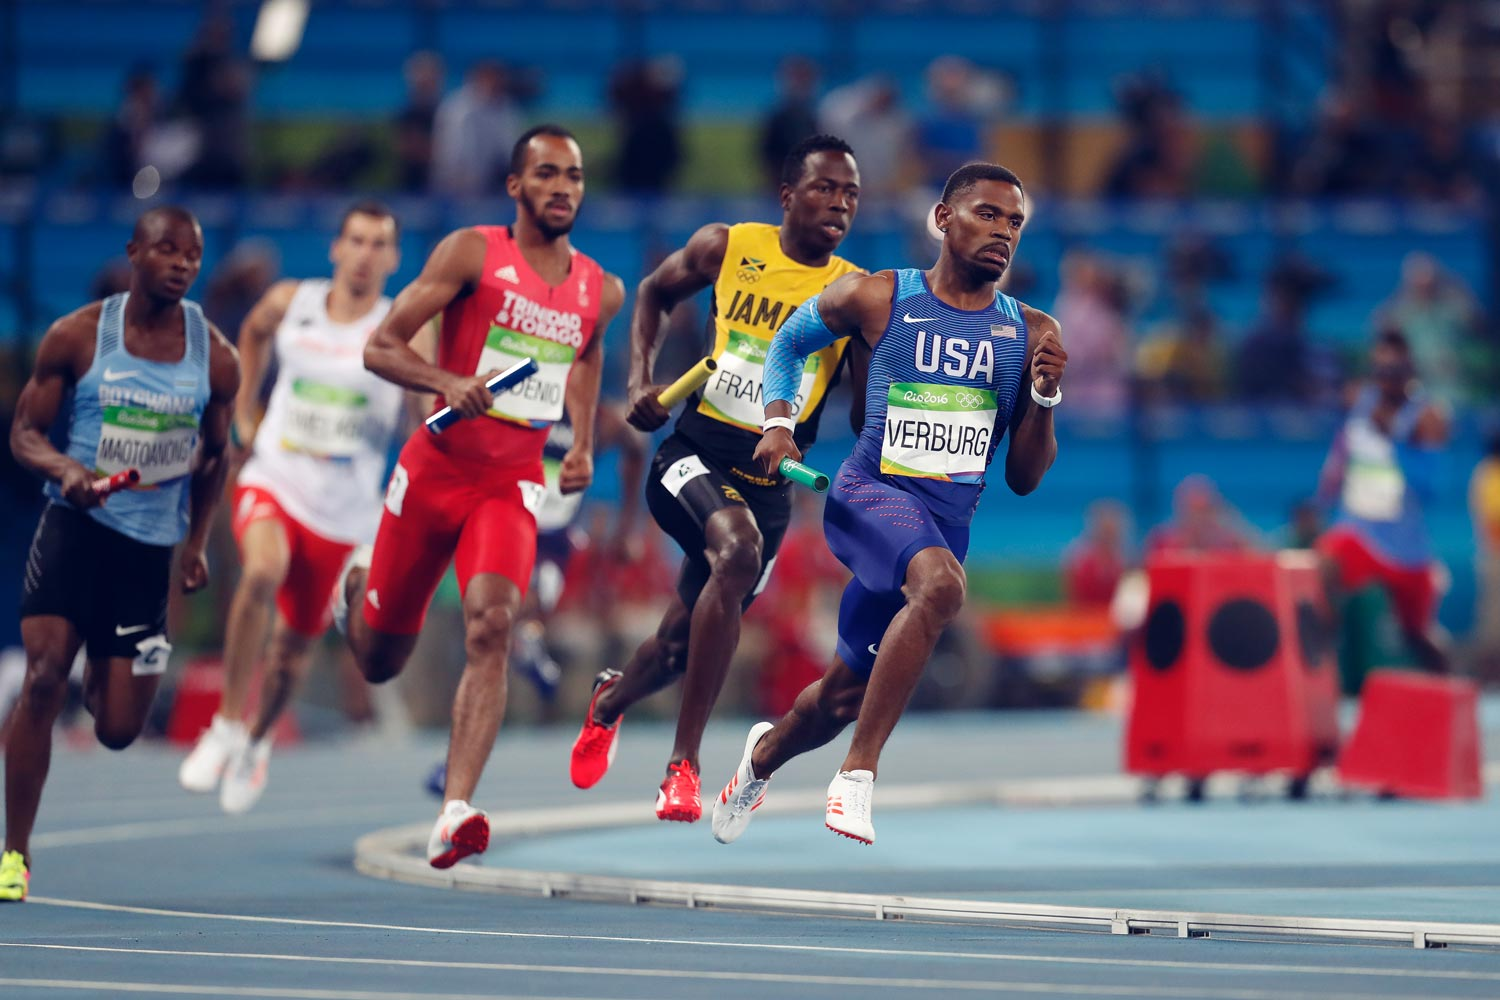 Runners compete in the 4x400 meter relay at the 2016 Olympics in Rio de Janeiro. There may be long-term benefits to missing out on Olympic gold, a new UVA study suggests.